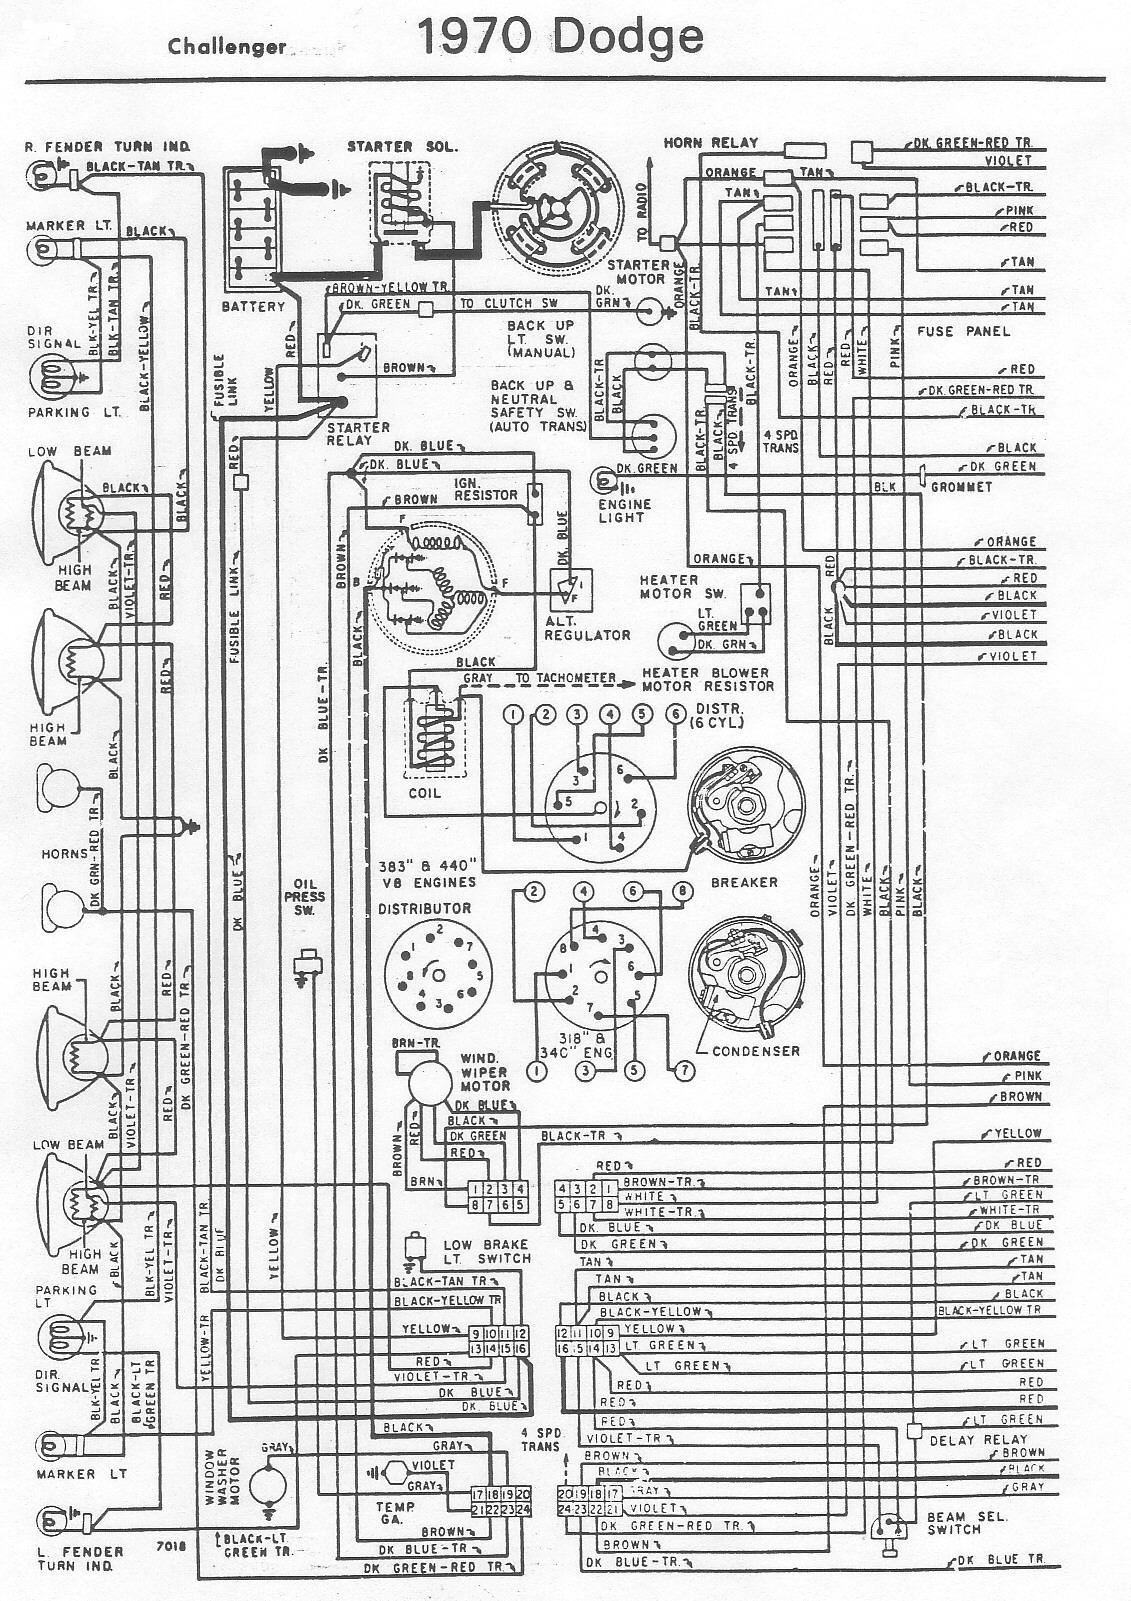 1970 chevy truck ignition switch wiring diagram with 1970 Dodge Challenger Ignition Wiring Harness on Cafe Racer Wiring furthermore HW3125 additionally 1396702 Turn Signal Switch Wire Colors 1955 A furthermore Chevrolet Corvette 1974  plete together with 1970 Dodge Challenger Ignition Wiring Harness.